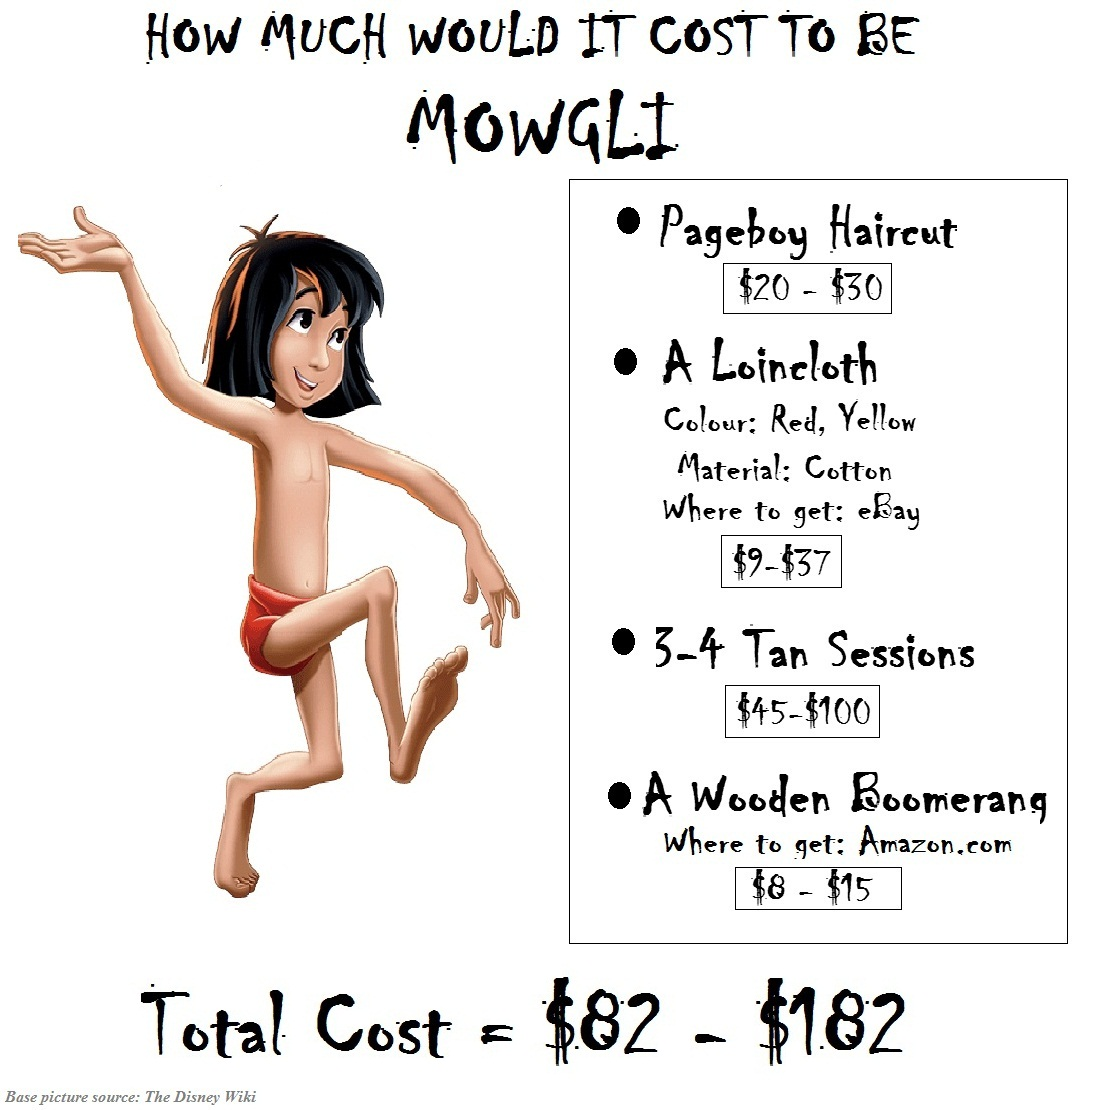 How much would it cost to be Jungle Book's Mowgli